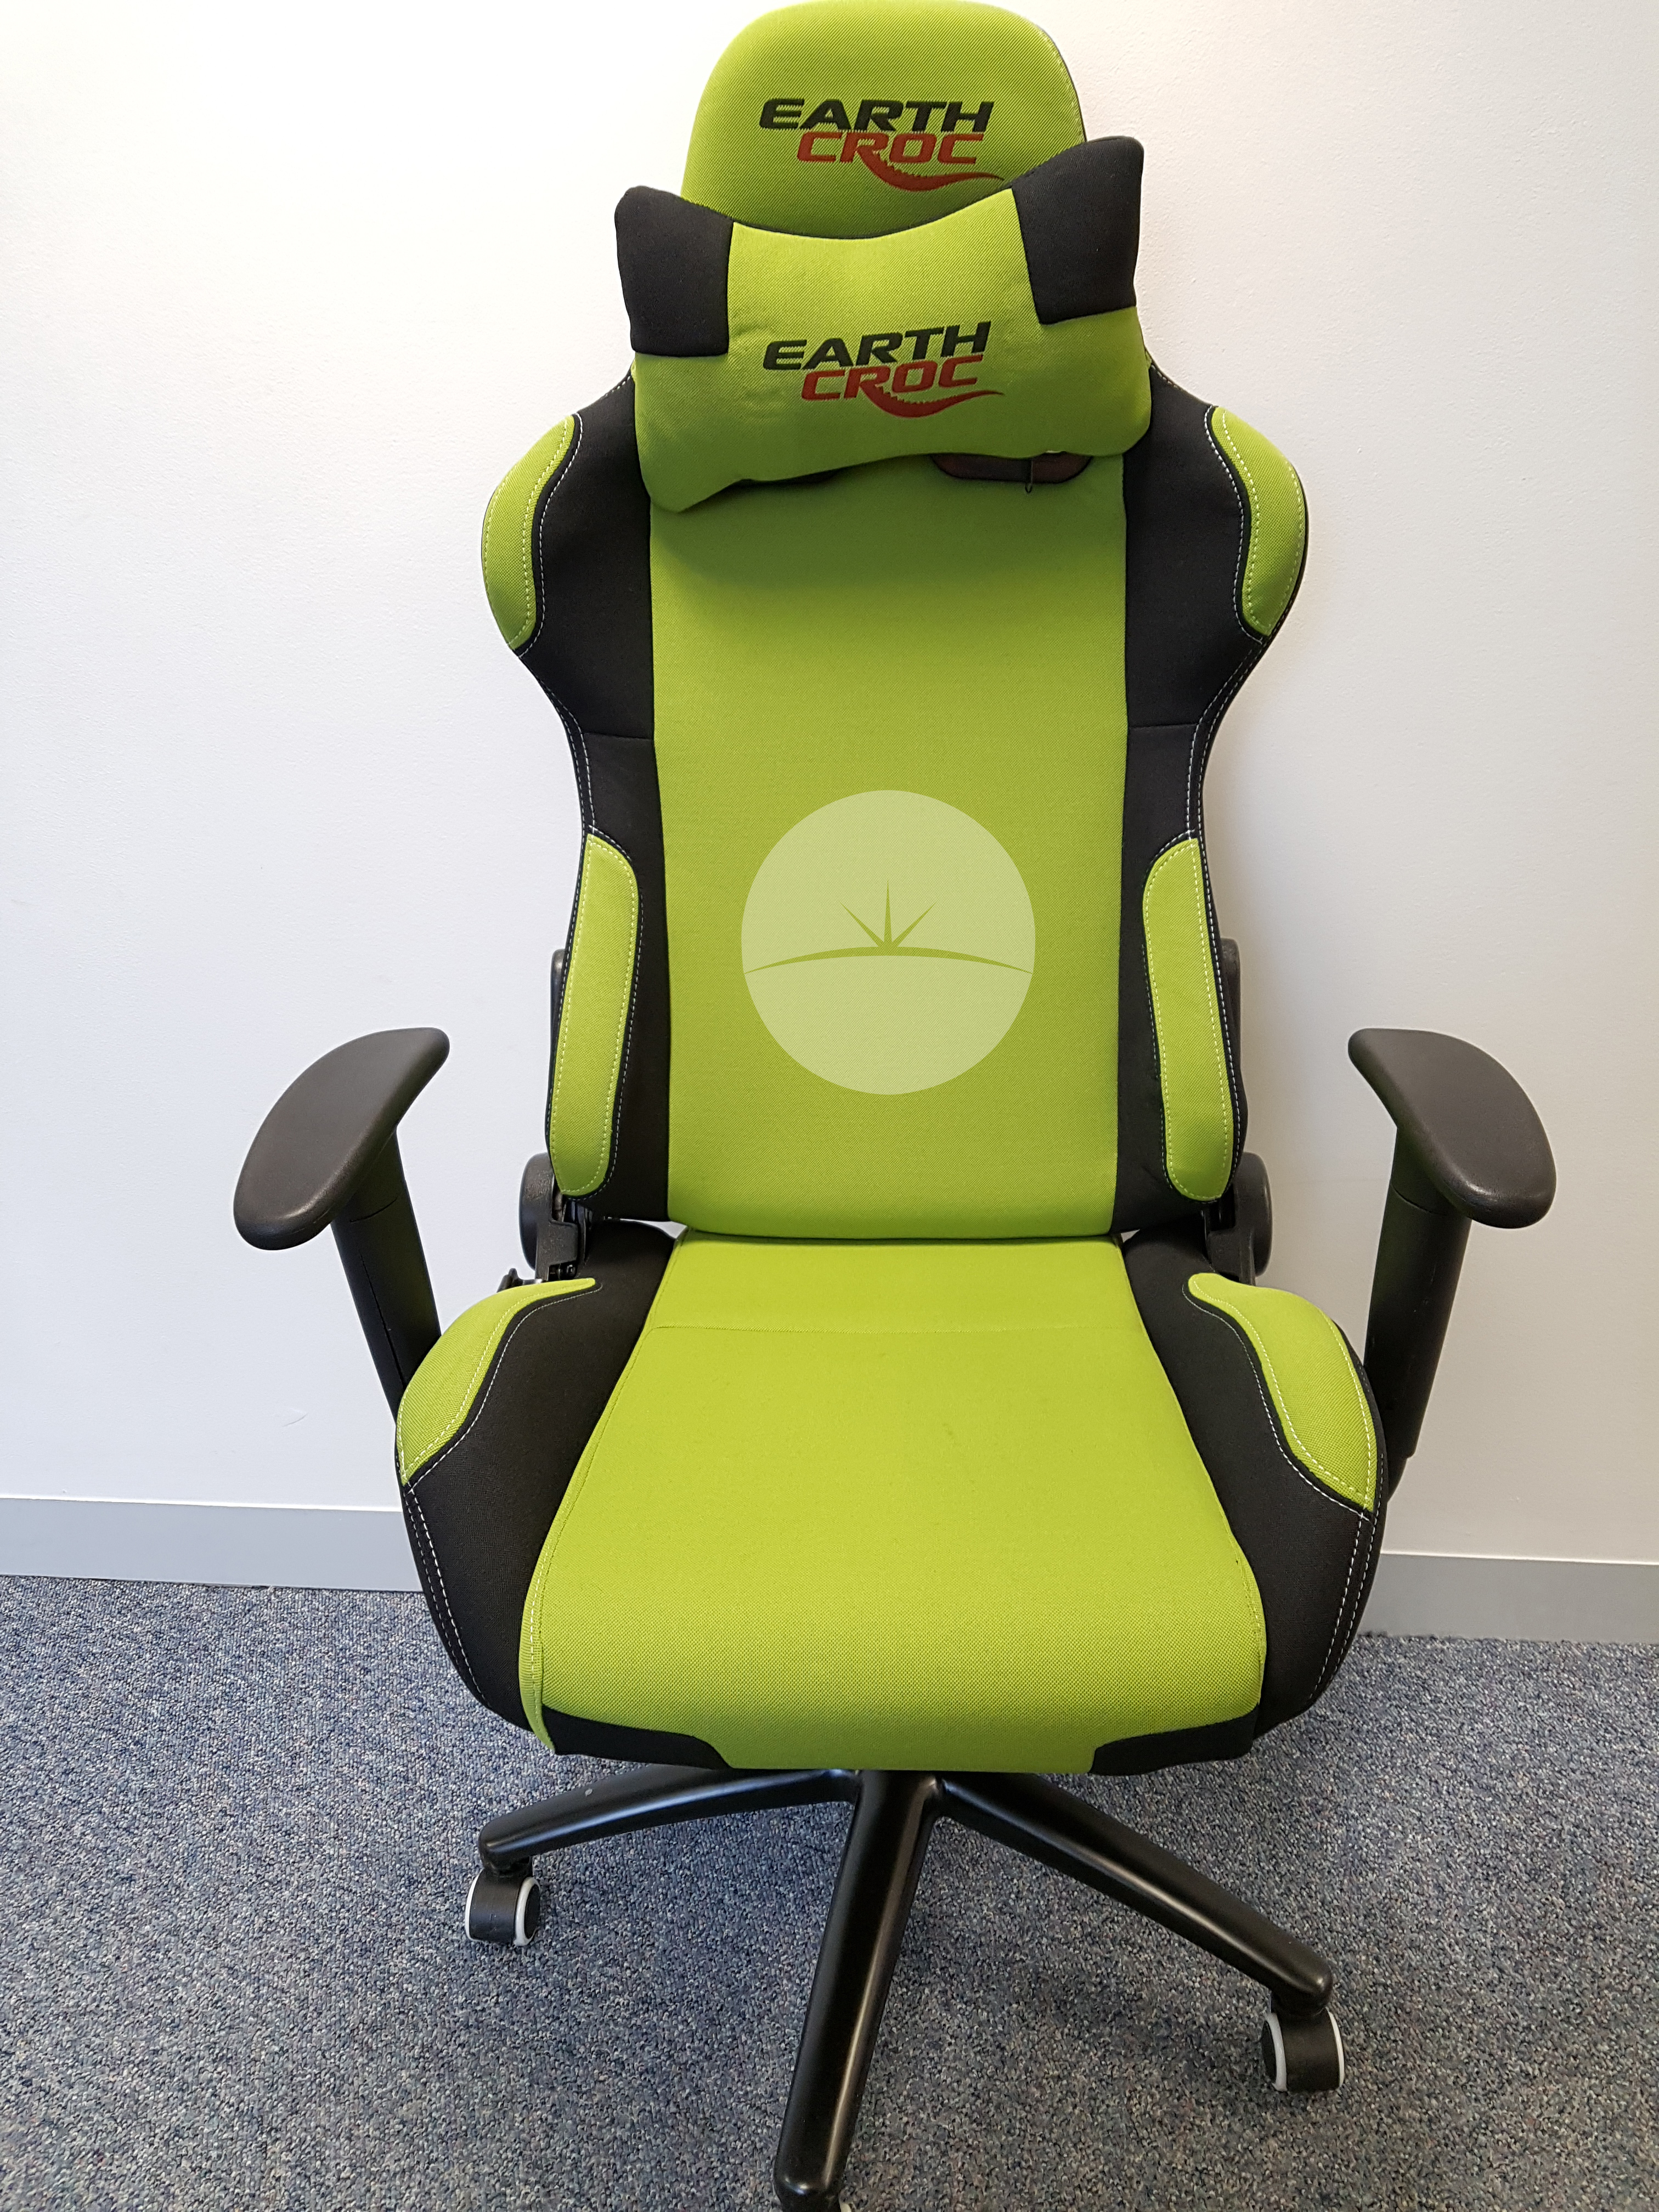 EarthCroc Professional fice Gaming Chair Review DroidHorizon